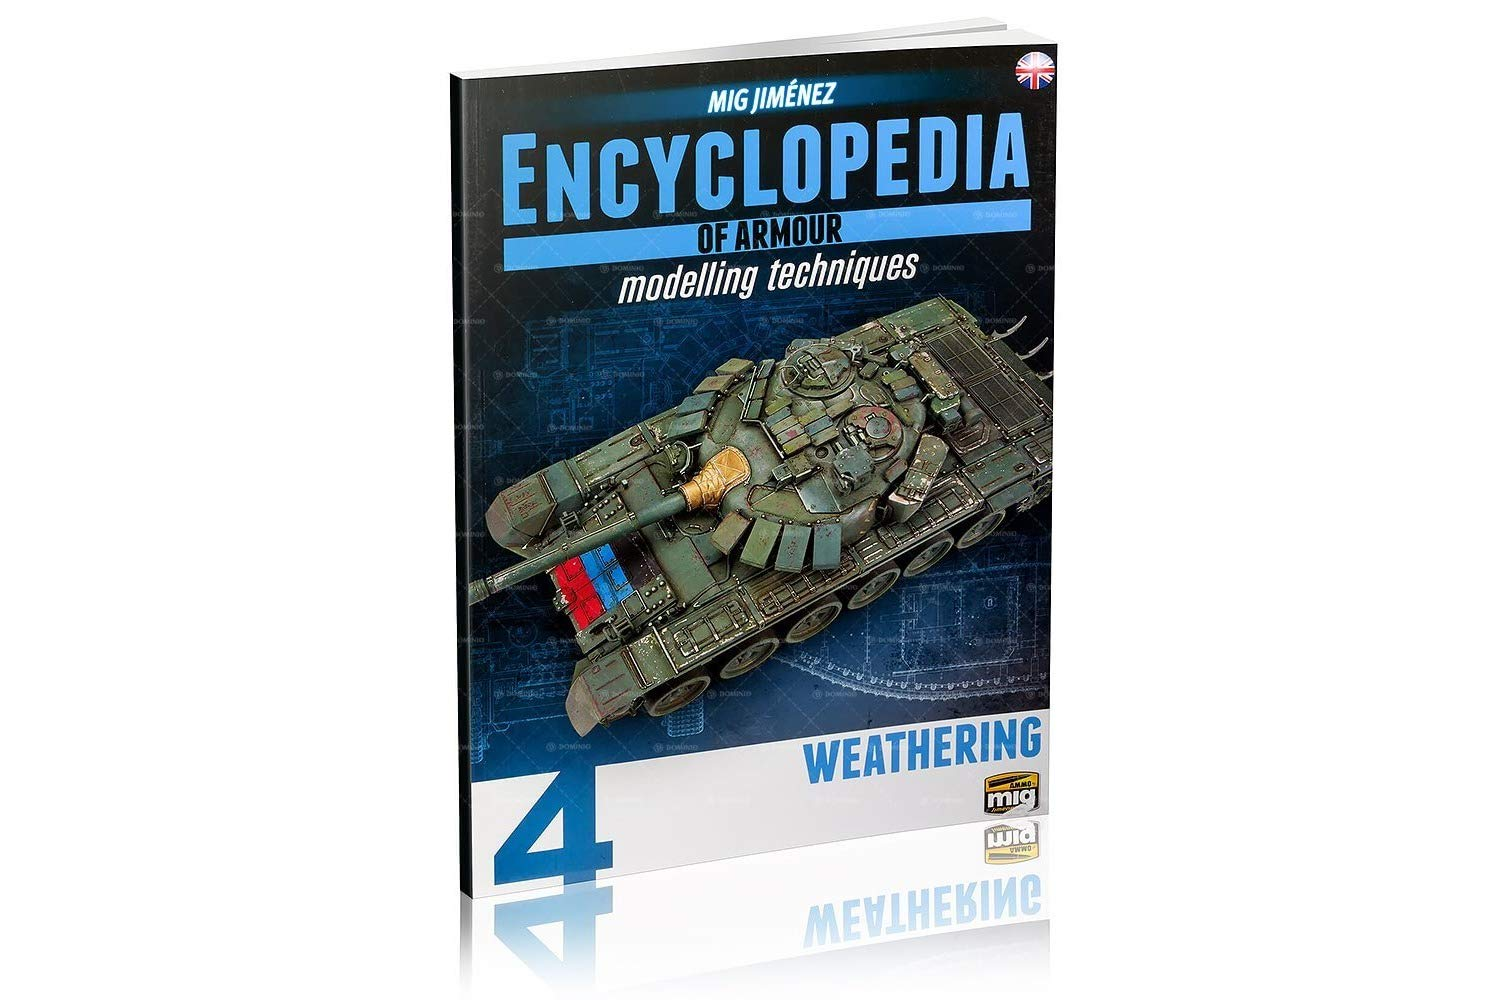 Ammo of Mig Encyclopedia of Armour Modelling Techniques Vol.4 - WEATHERING - ENGLISH #6153